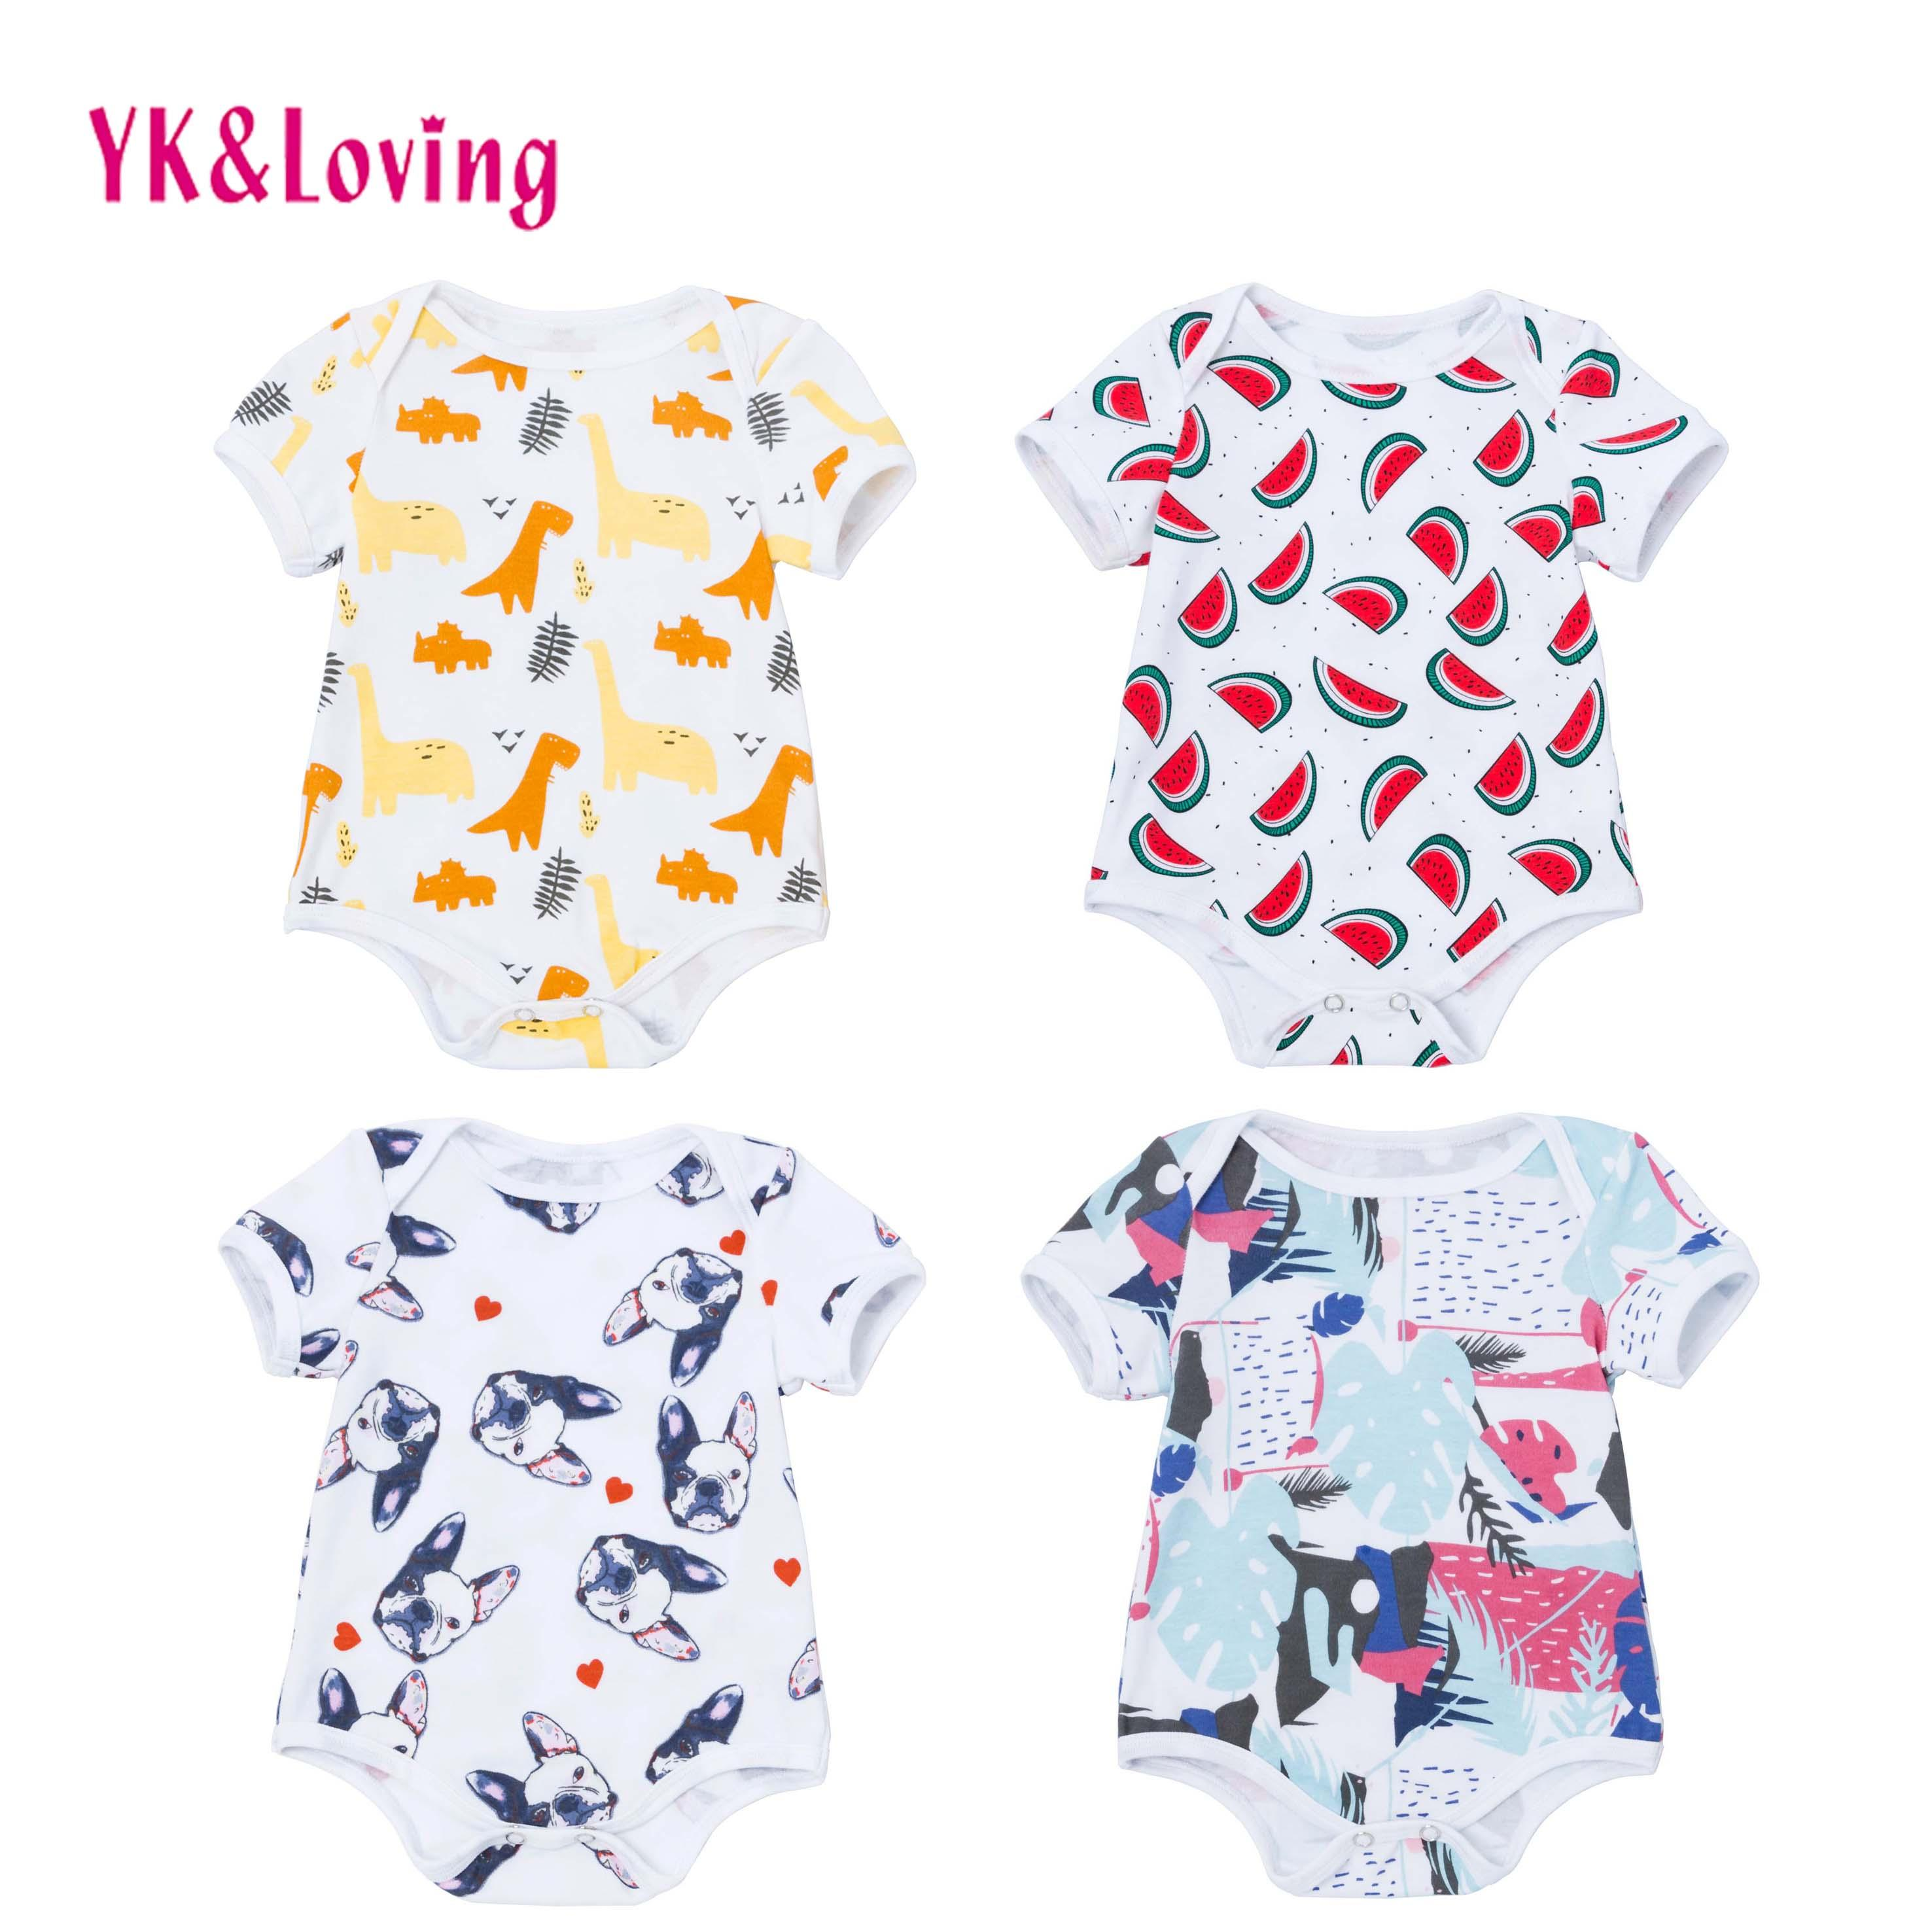 c8966696b Newborn Baby Rompers Cotton Short Sleeve Jumpsuit Boy Girls Clothing ...